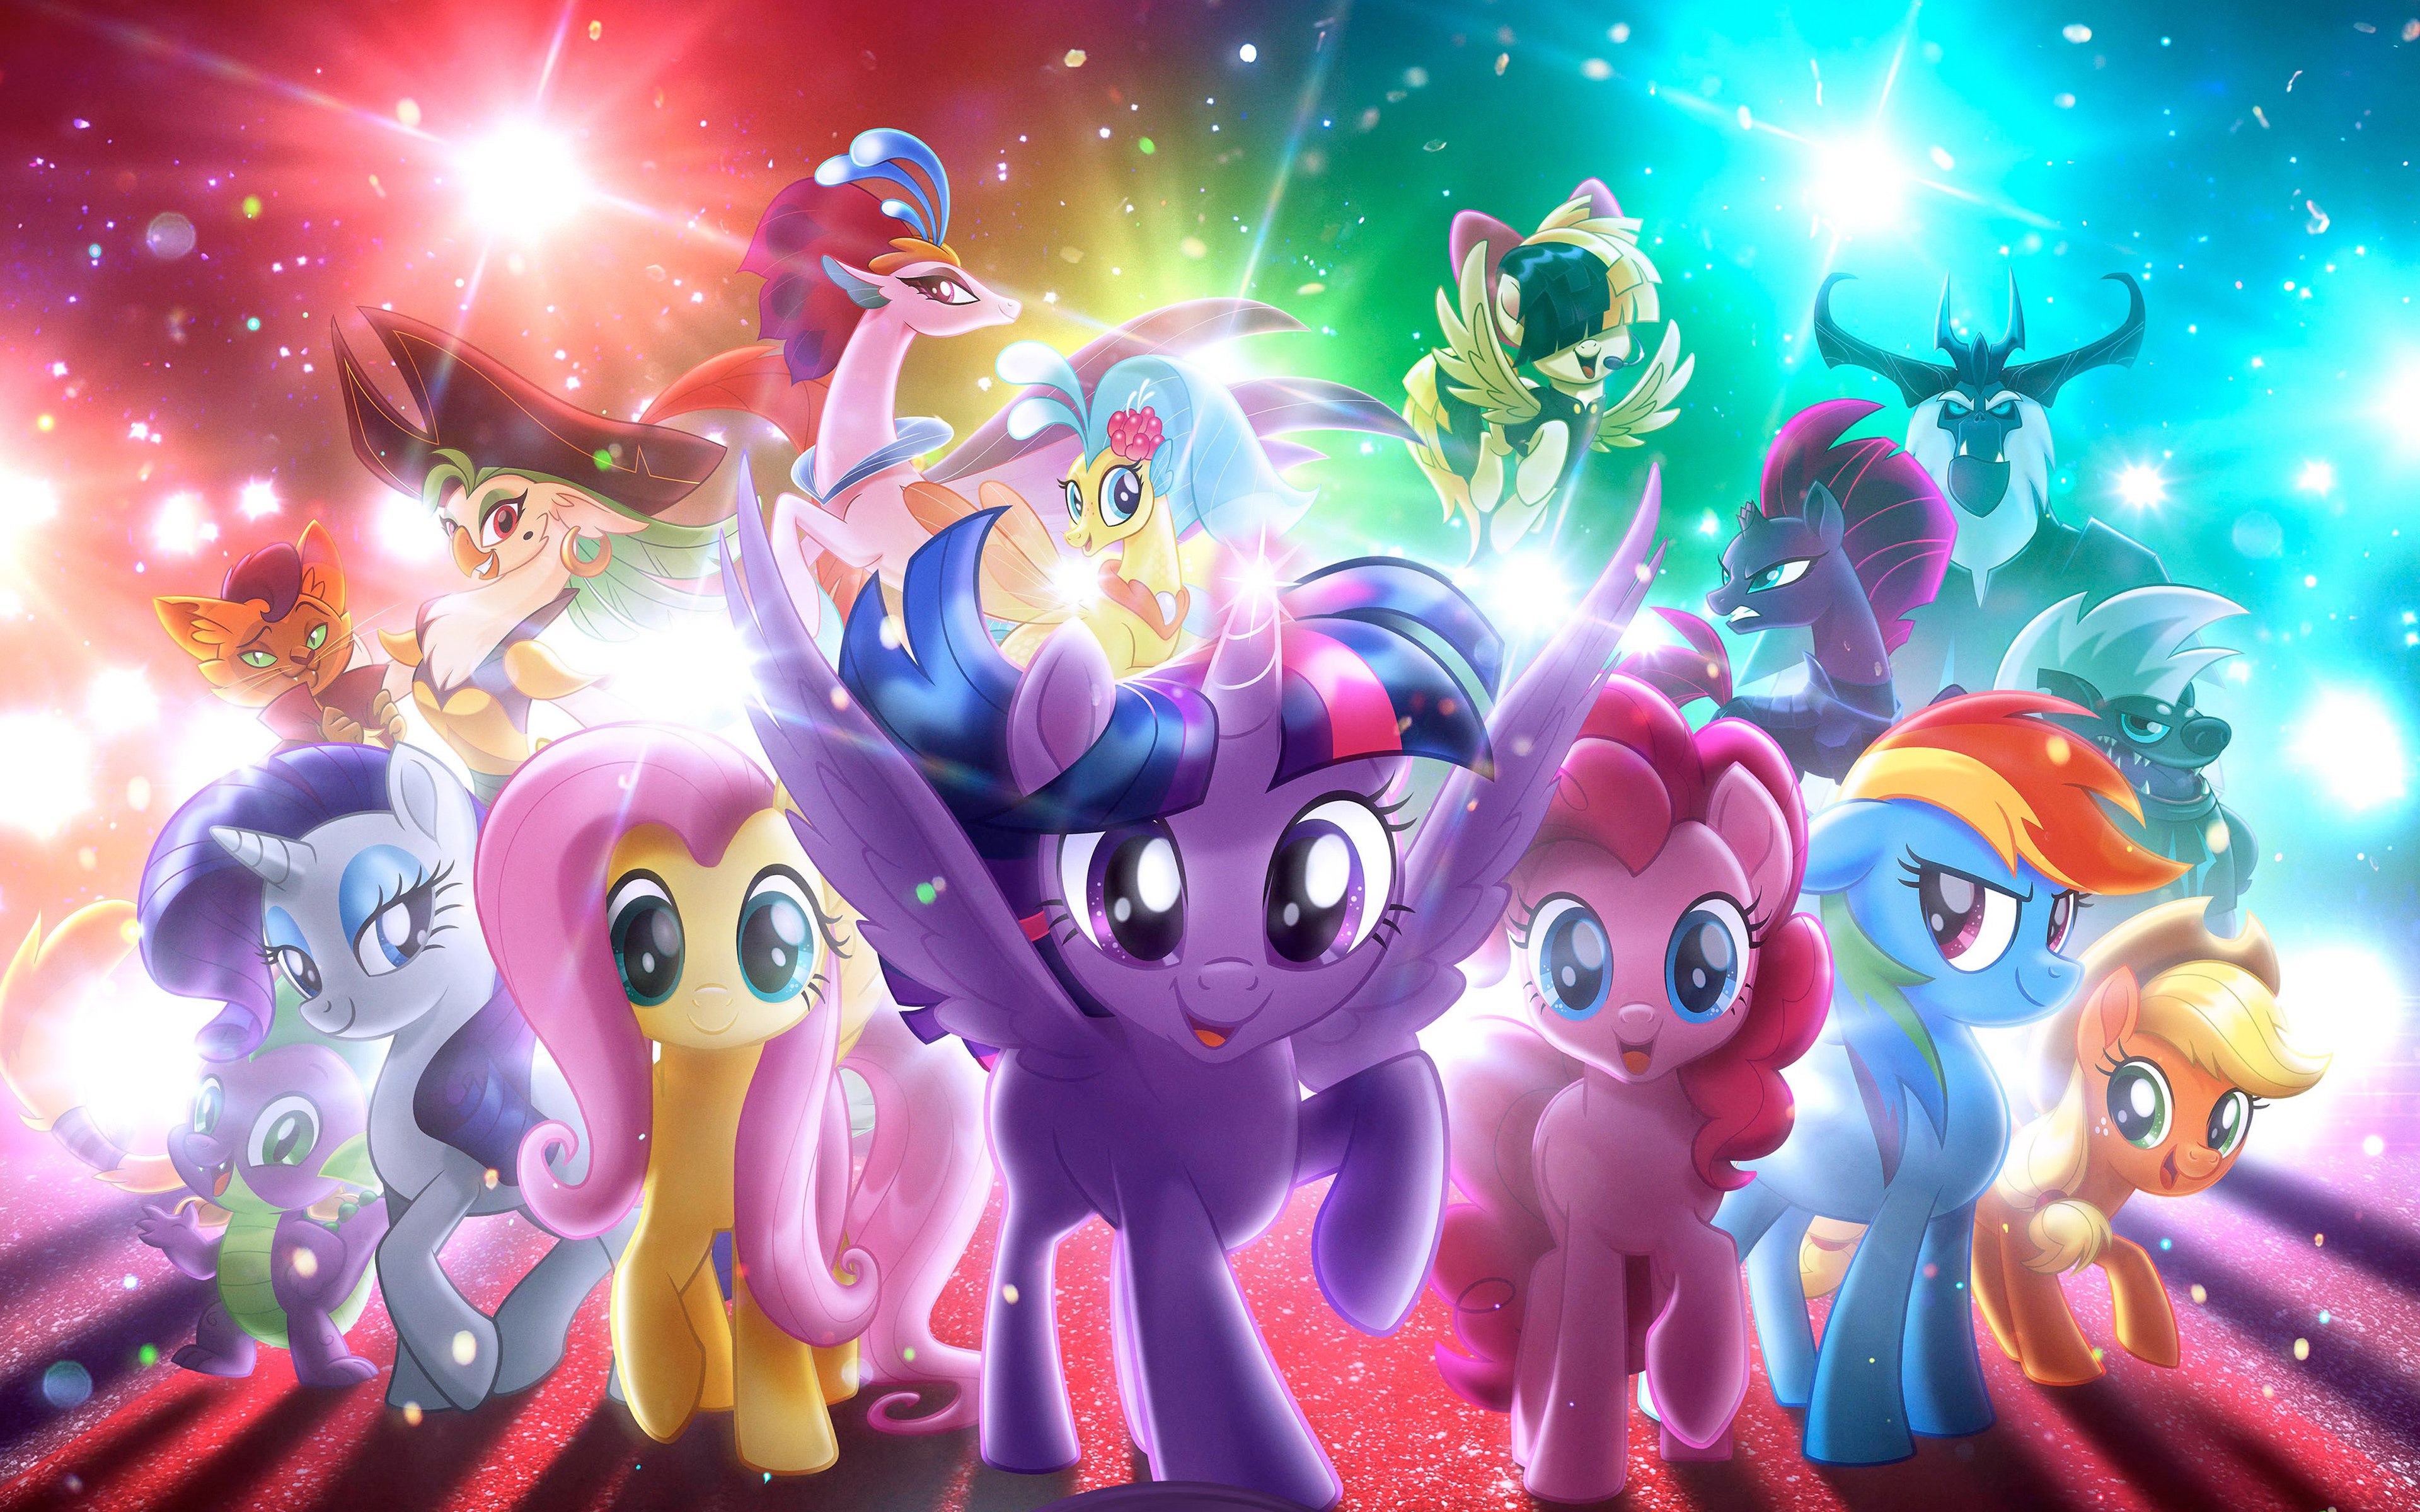 4k my little pony wallpapers high quality  download free